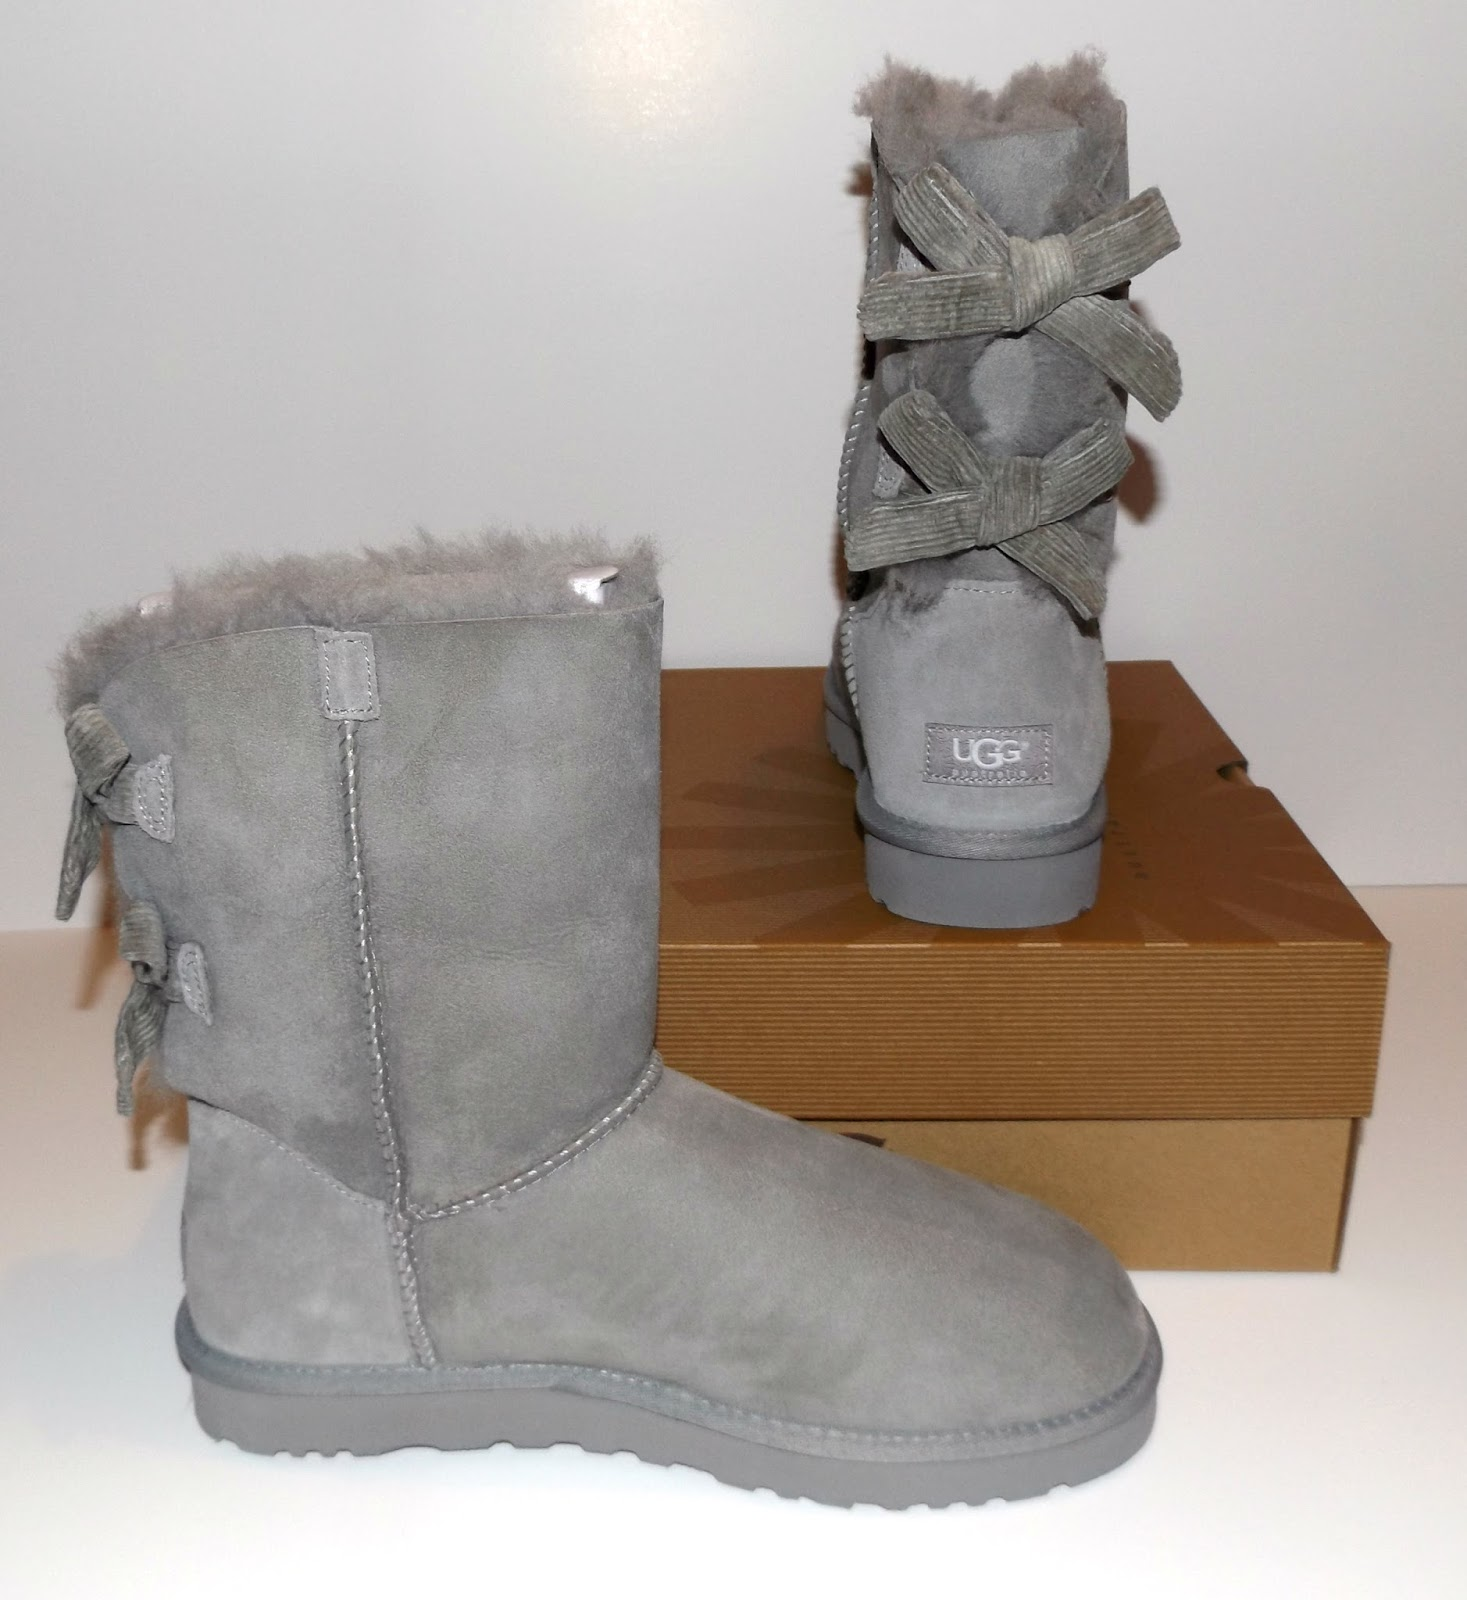 ugg bailey bow boots review queen bee becca. Black Bedroom Furniture Sets. Home Design Ideas